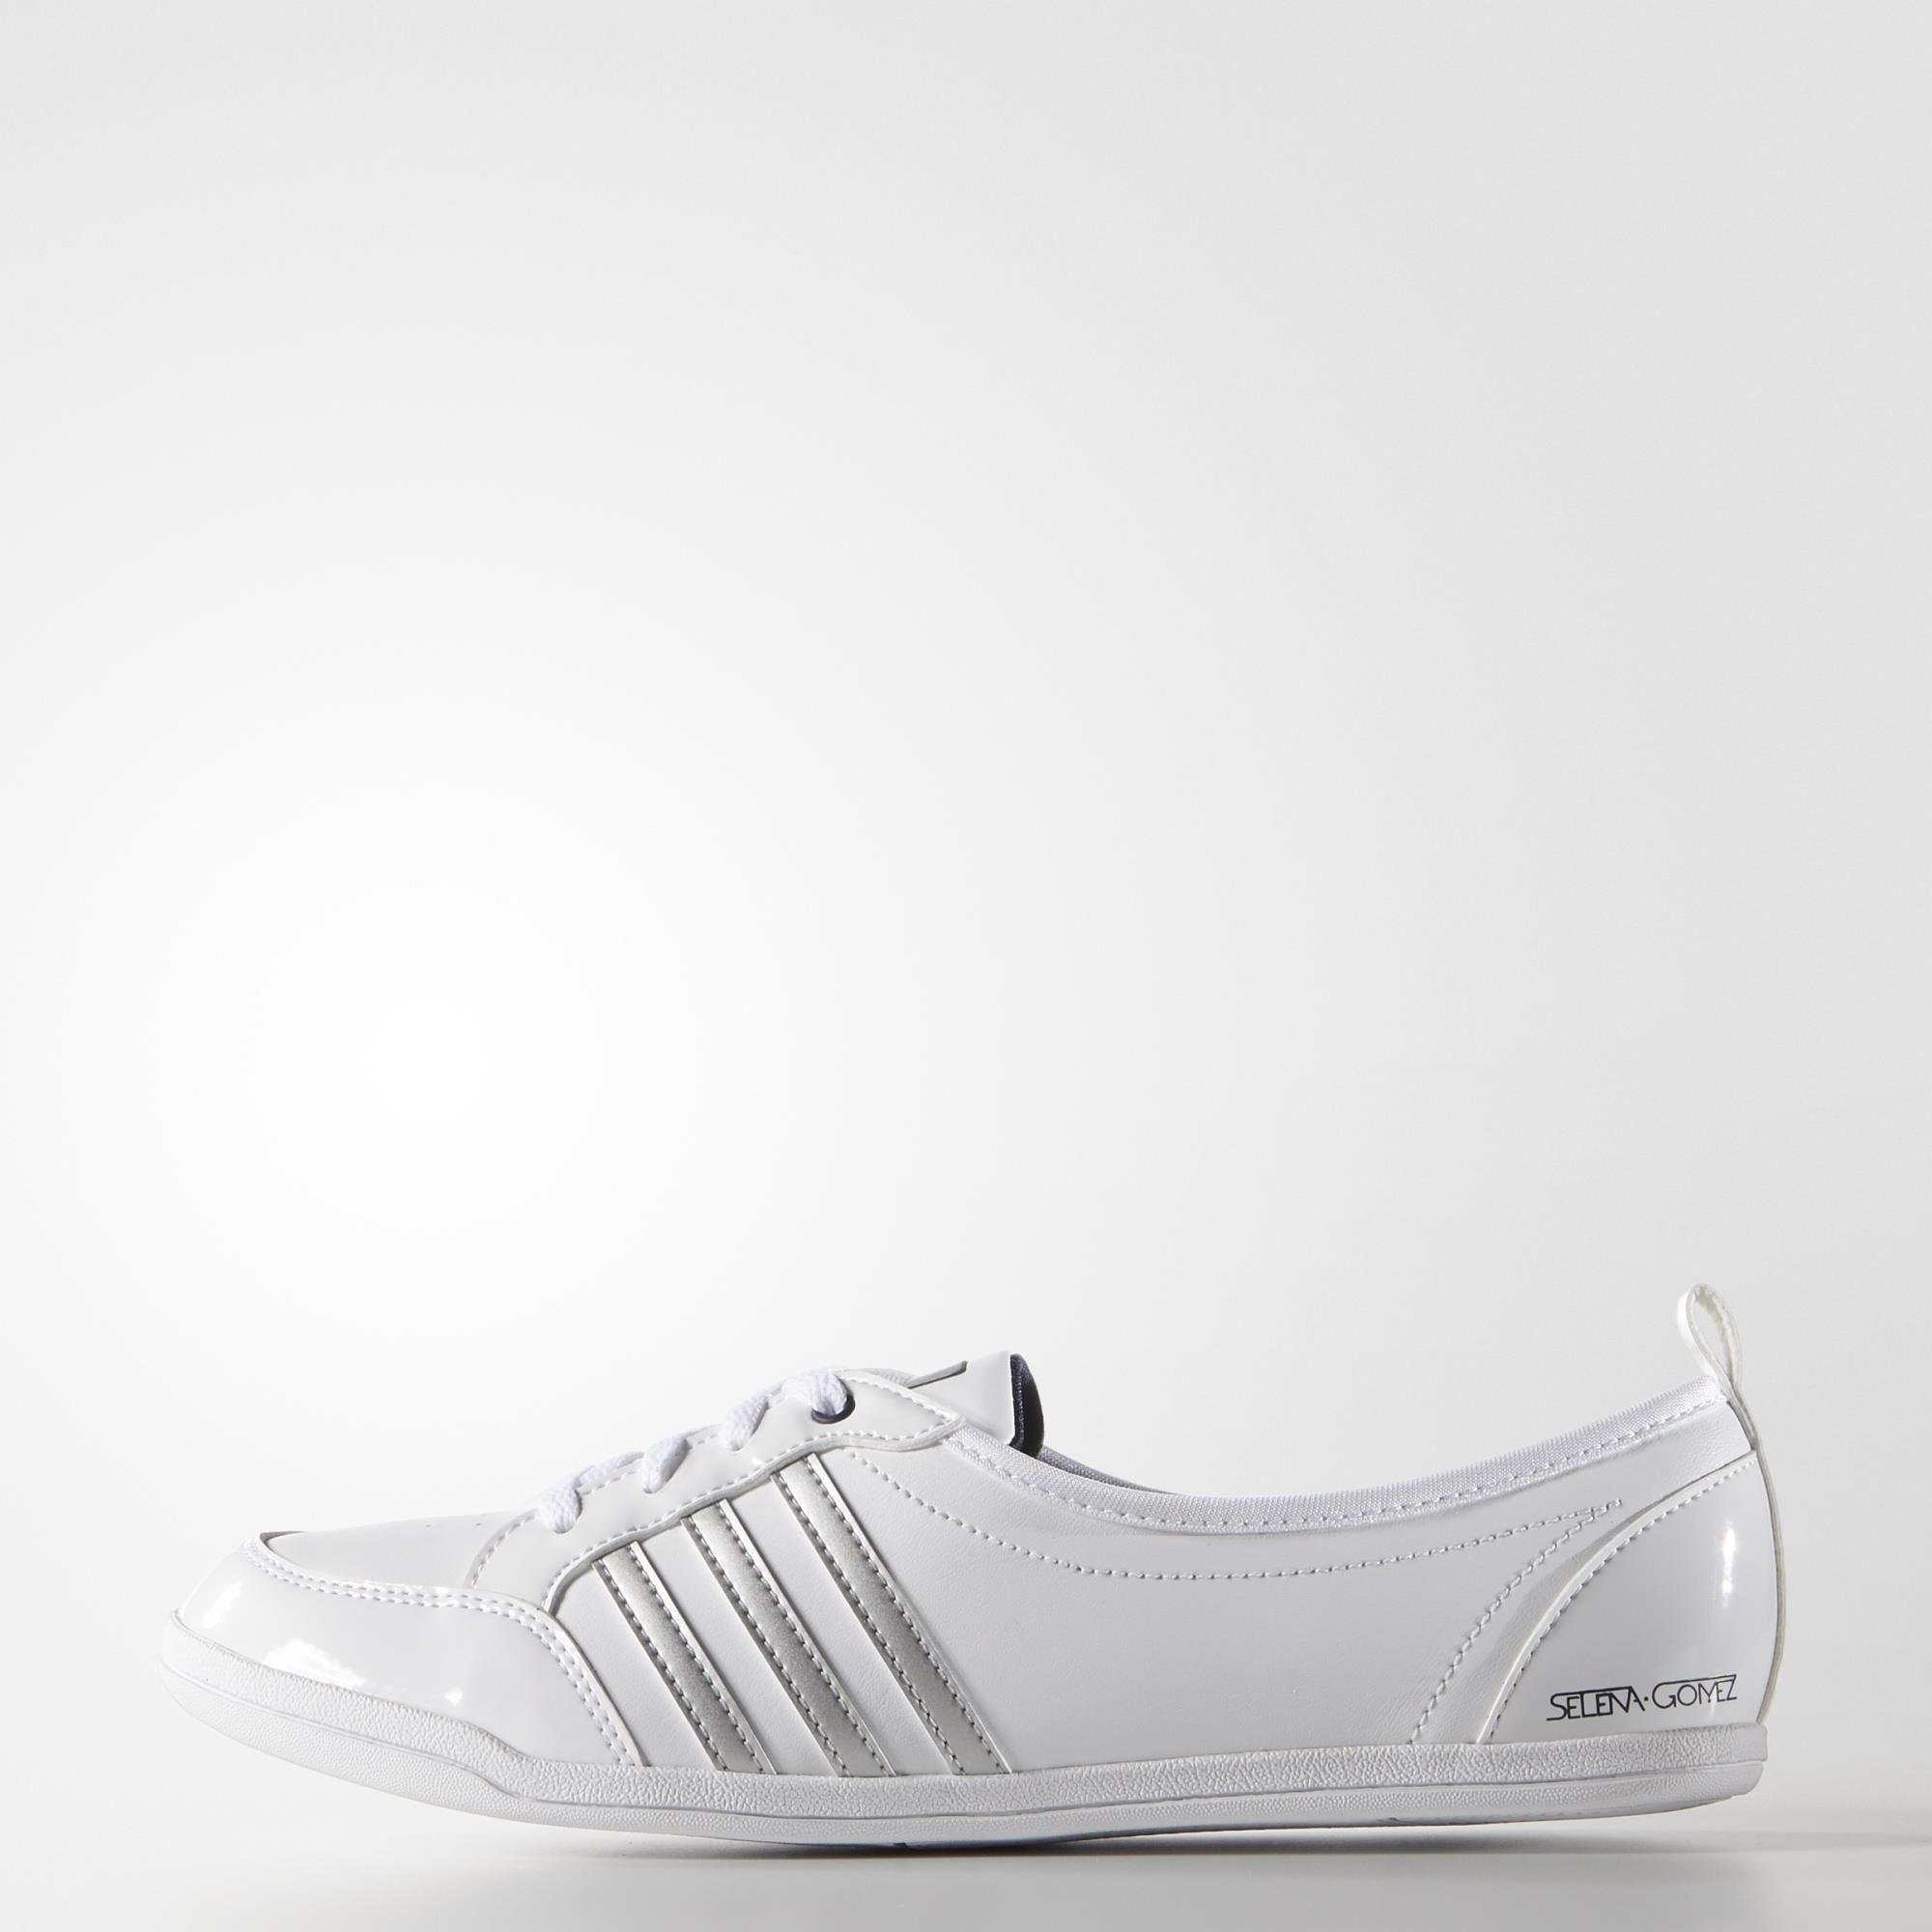 Adidas Piona Selena Gomez Shoes - White